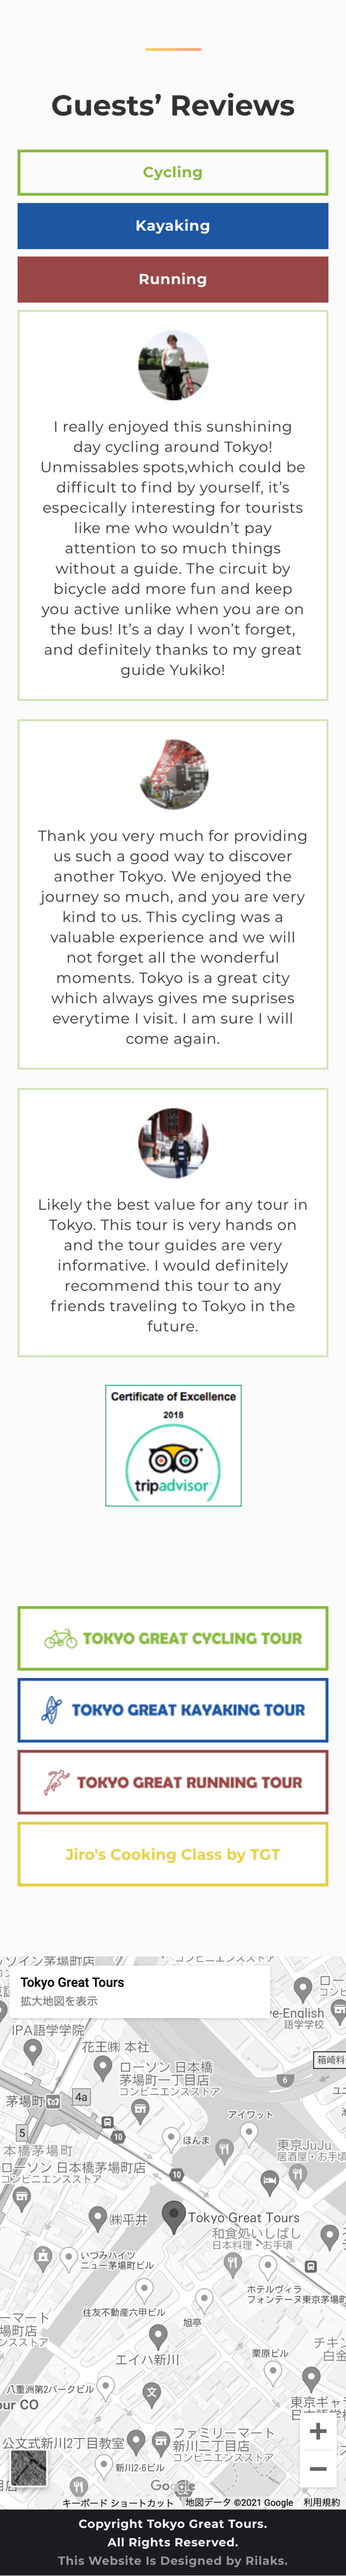 Tokyo Great Tours(スマホ)